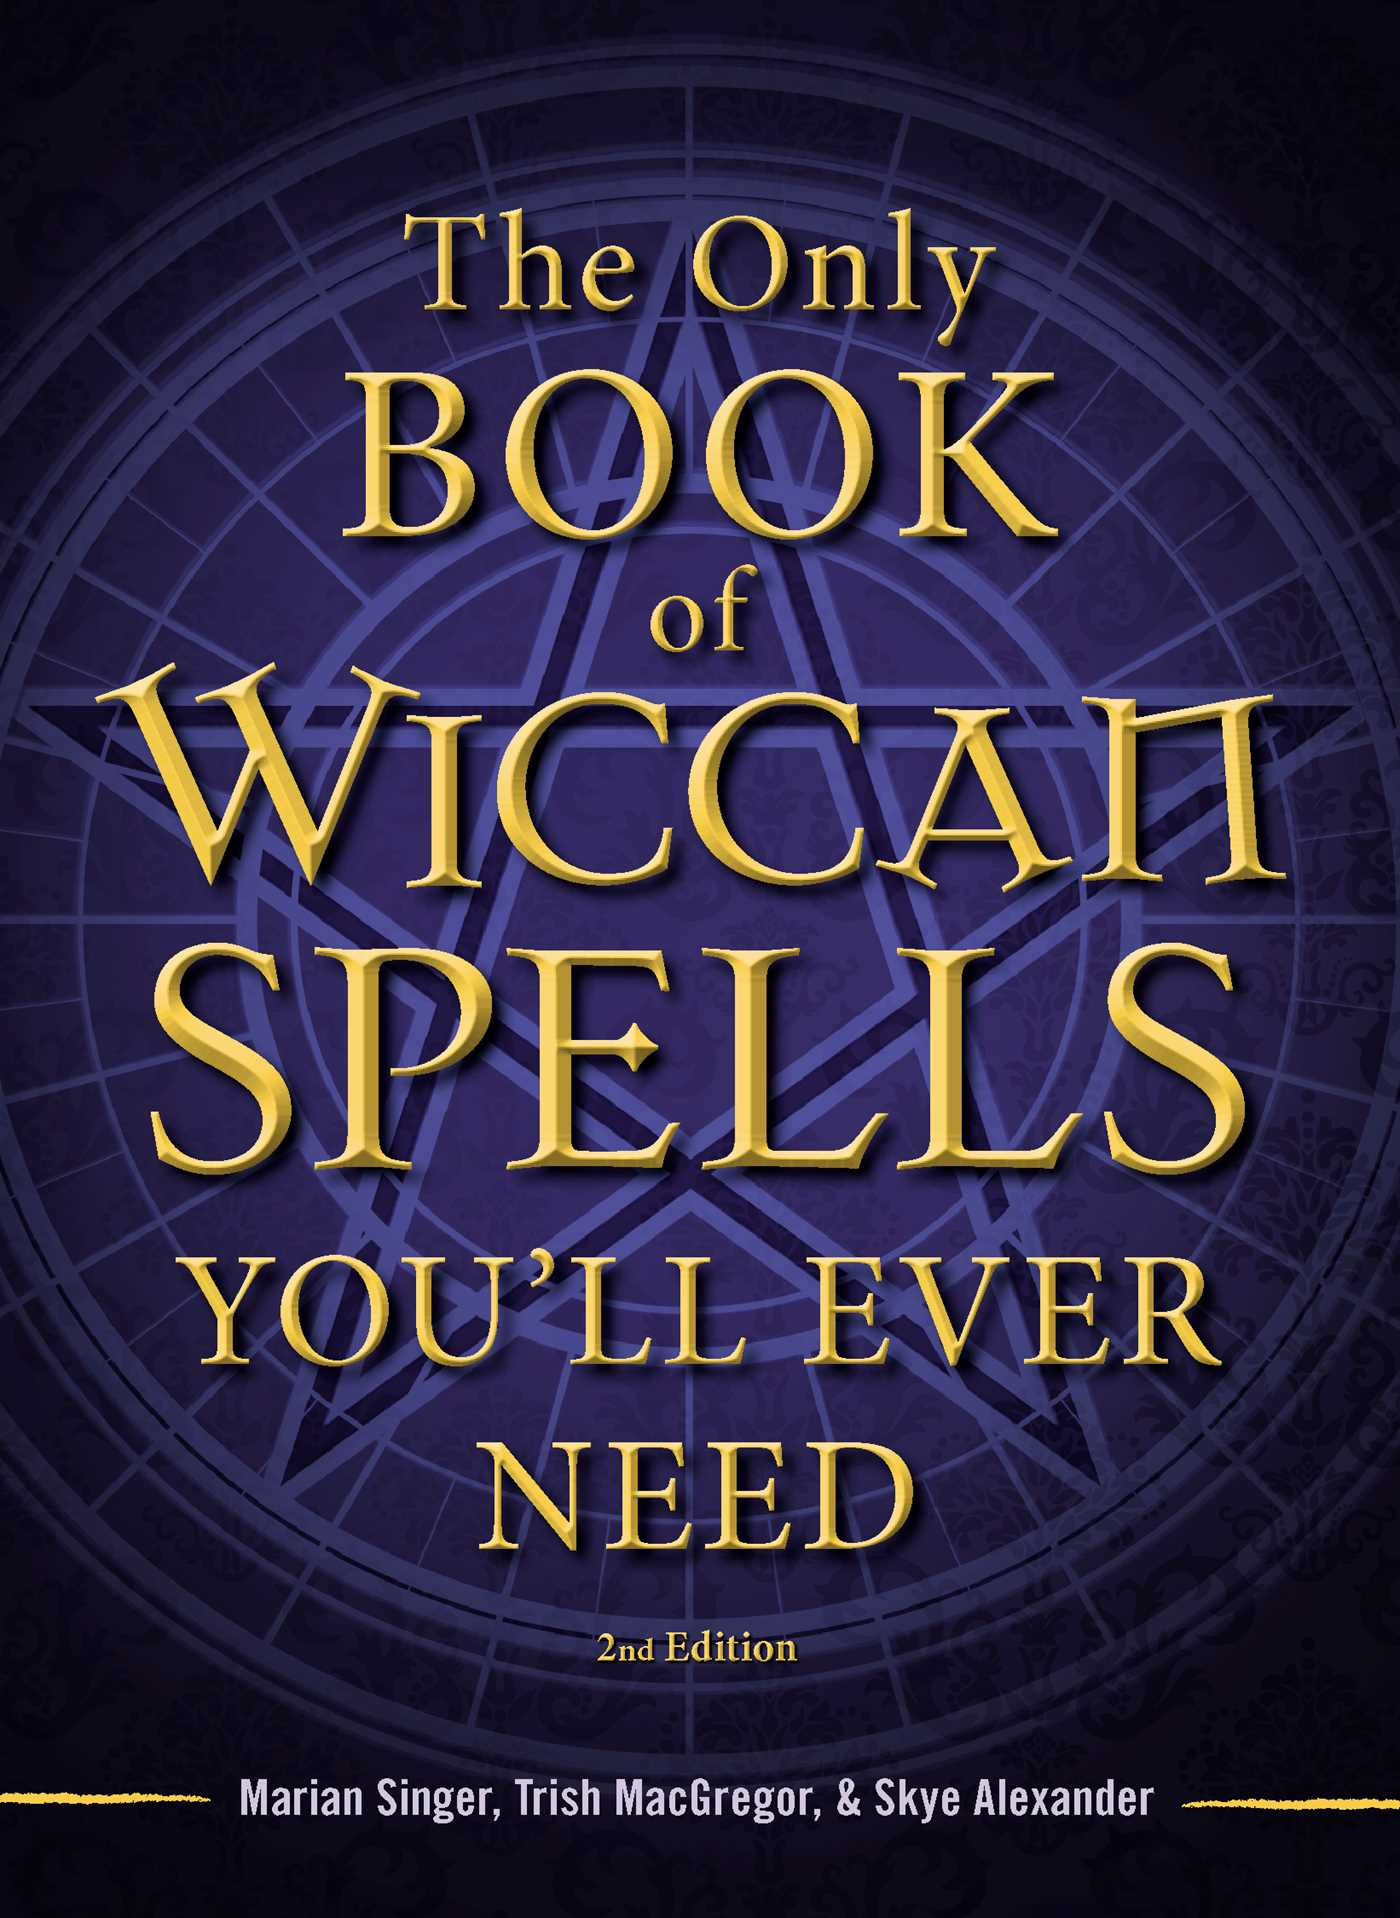 The only book of wiccan spells youll ever need 9781440542756 hr